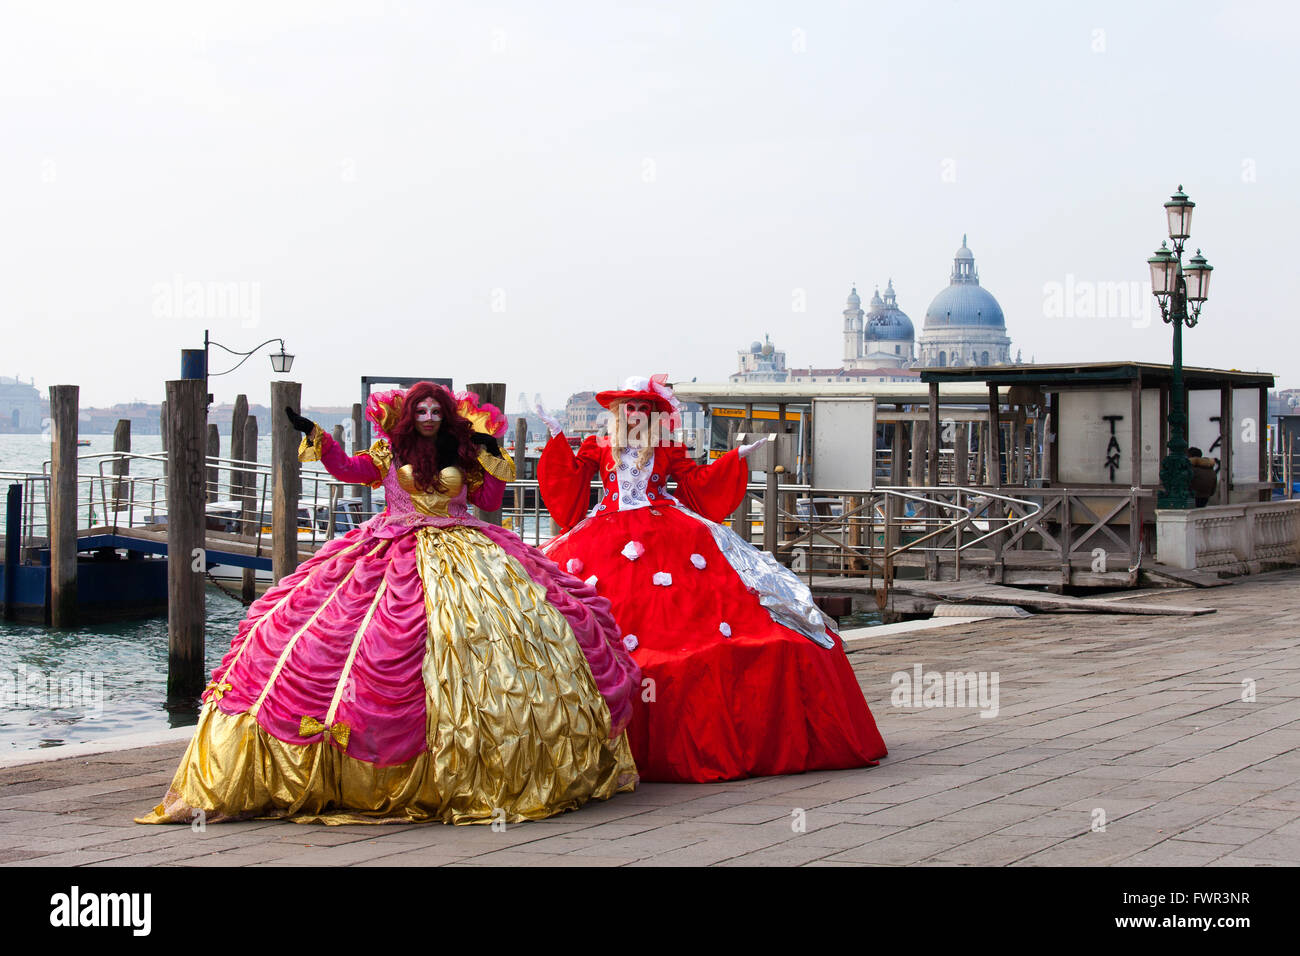 Two ladies in a traditional Venetian carnival dress and masks, at Piazza San Marco. Stock Photo